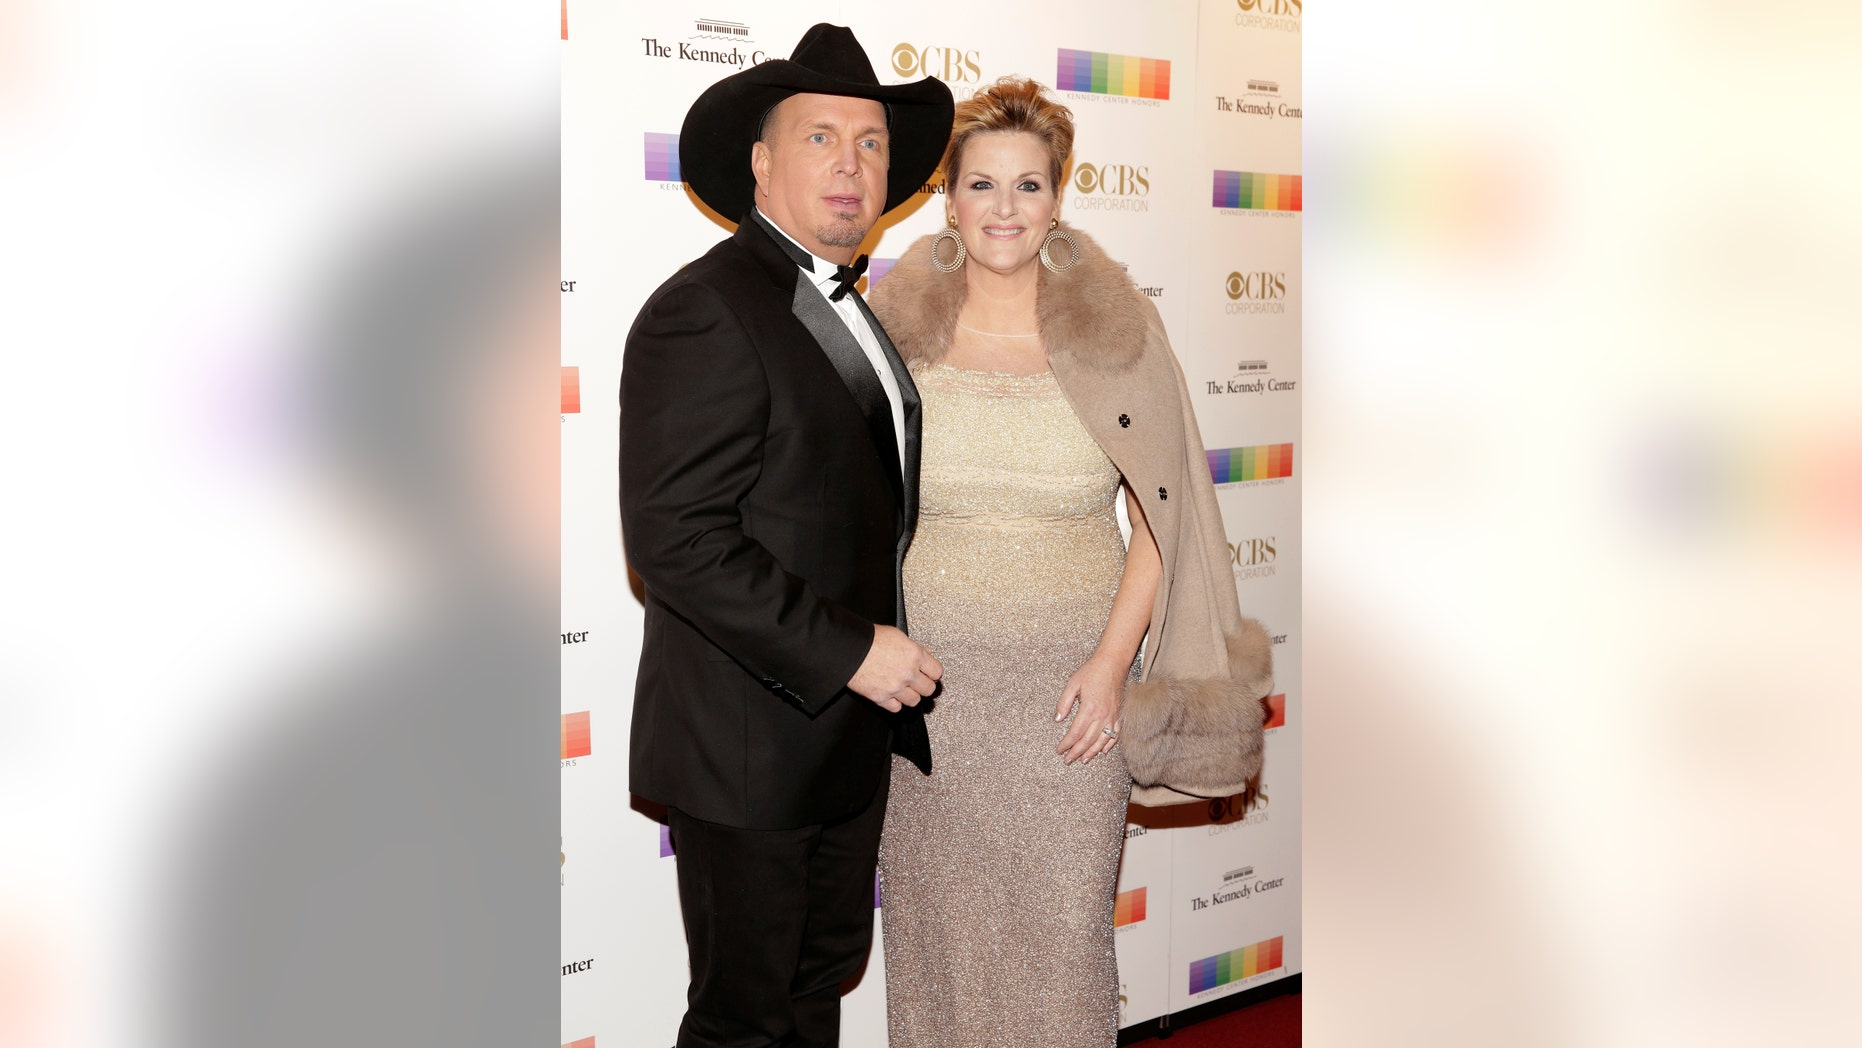 File photo: Musicians Garth Brooks and Tricia Yearwood arrives for the Kennedy Center Honors in Washington, U.S. December 4, 2016. (REUTERS/Joshua Roberts)